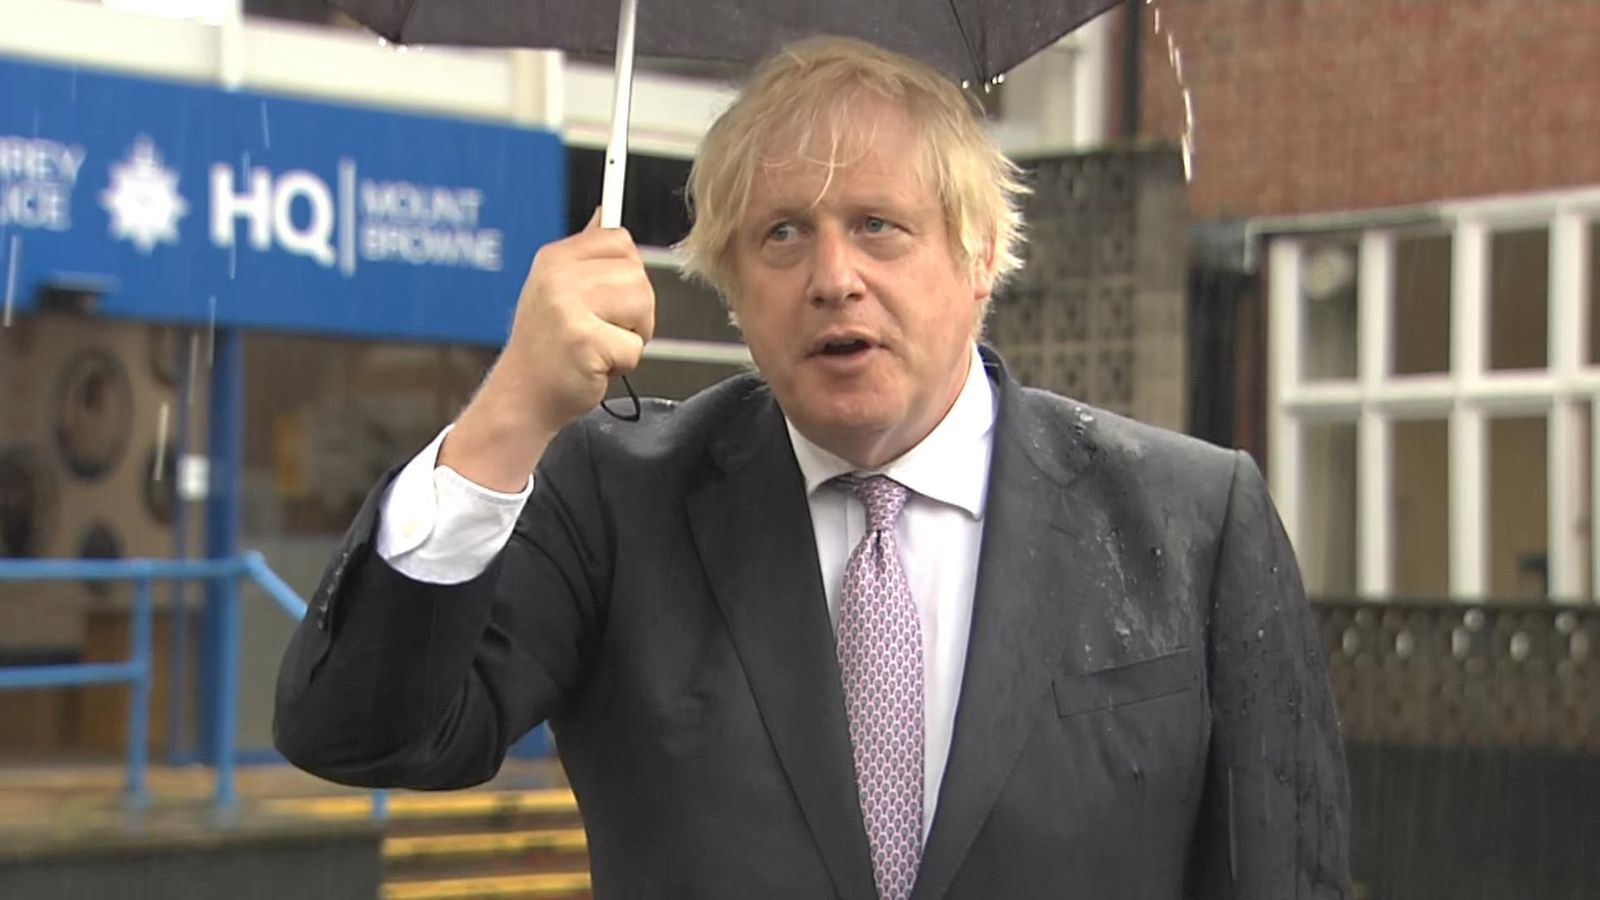 Boris Johnson stressed the need for caution despite recent falls in the number of cases. Photo: SkyNews